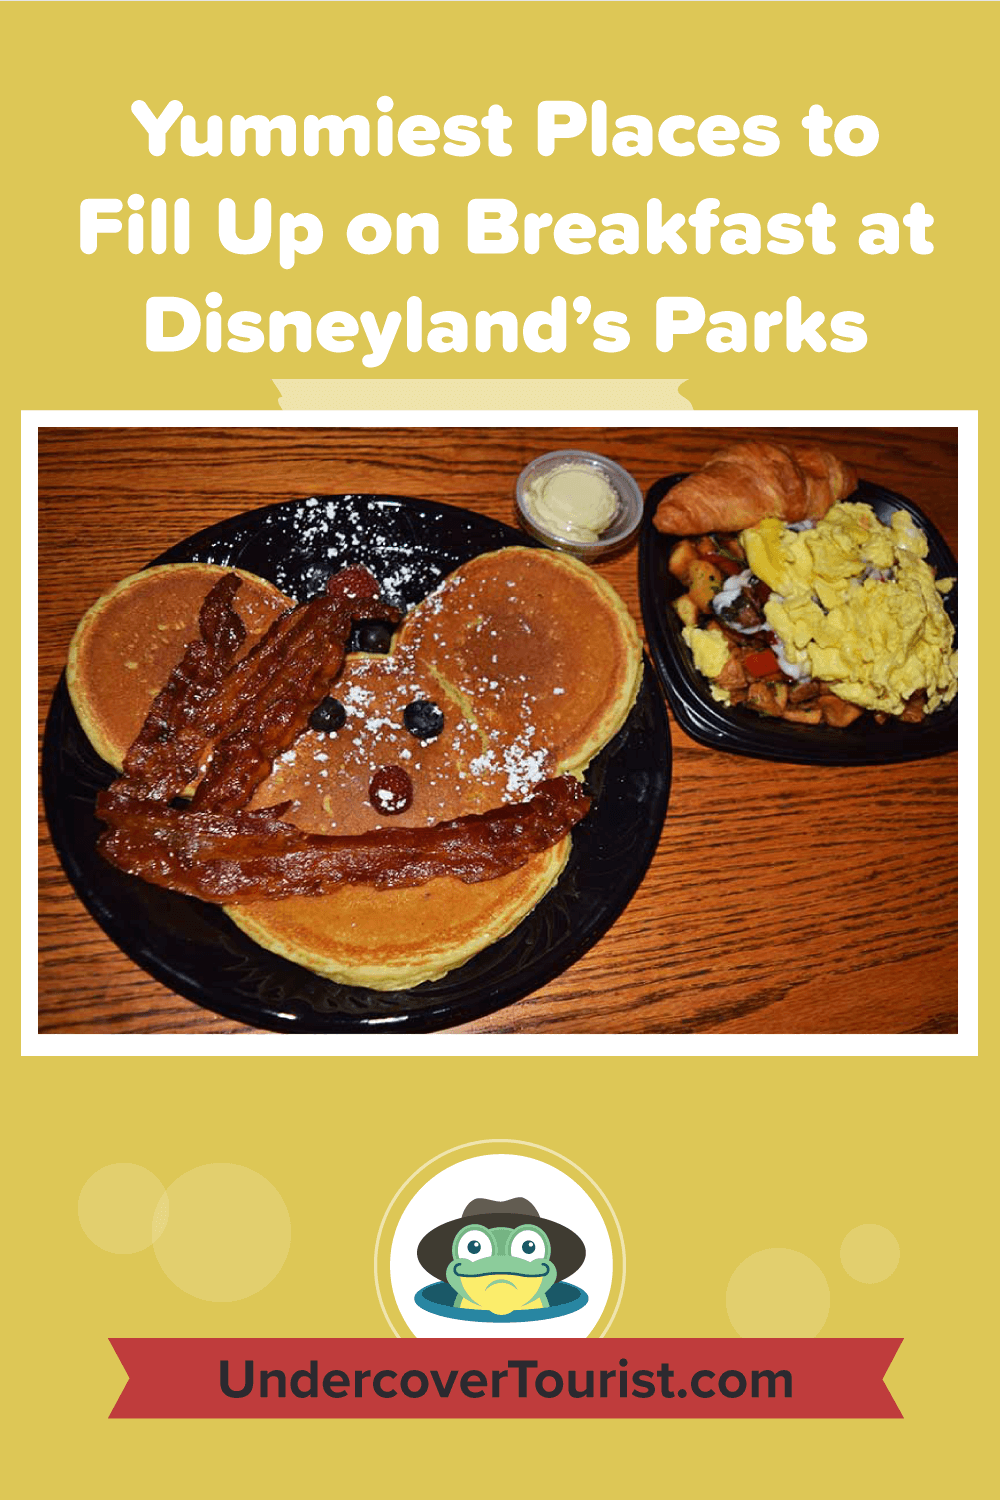 Yummiest Places to Fill Up on Breakfast at Disneyland - Pinterest